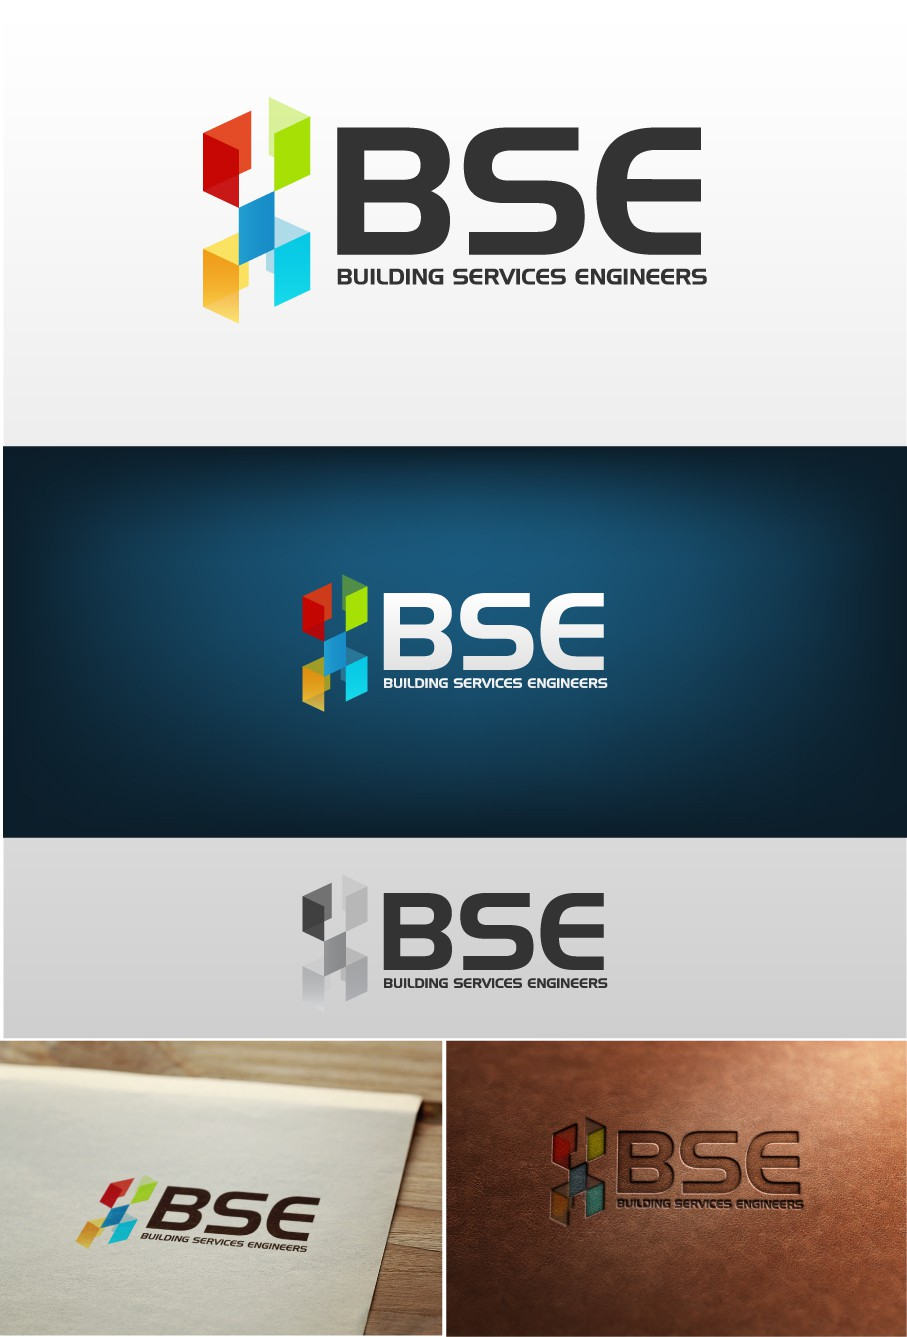 Help BSE (or bse) with a new logo and business card